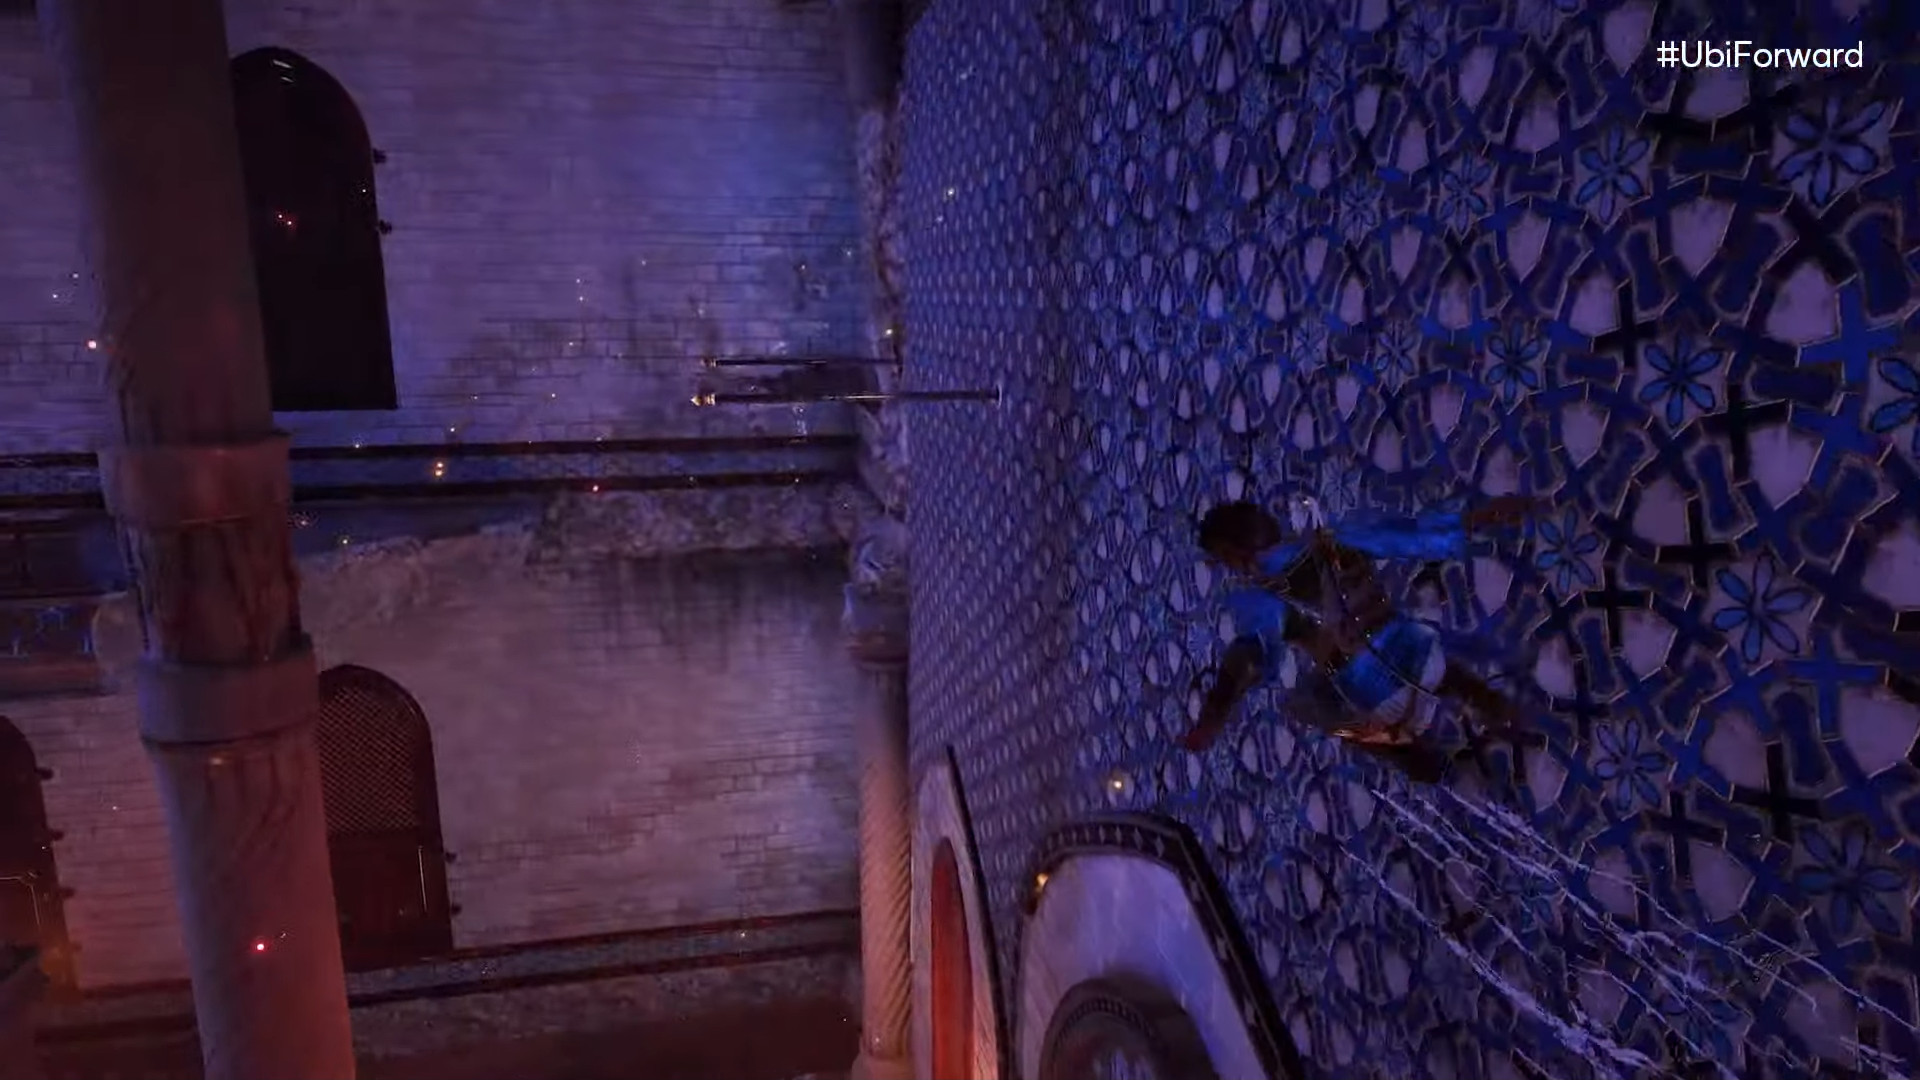 Prince of Persia: Sands of Time Remake has been delayed